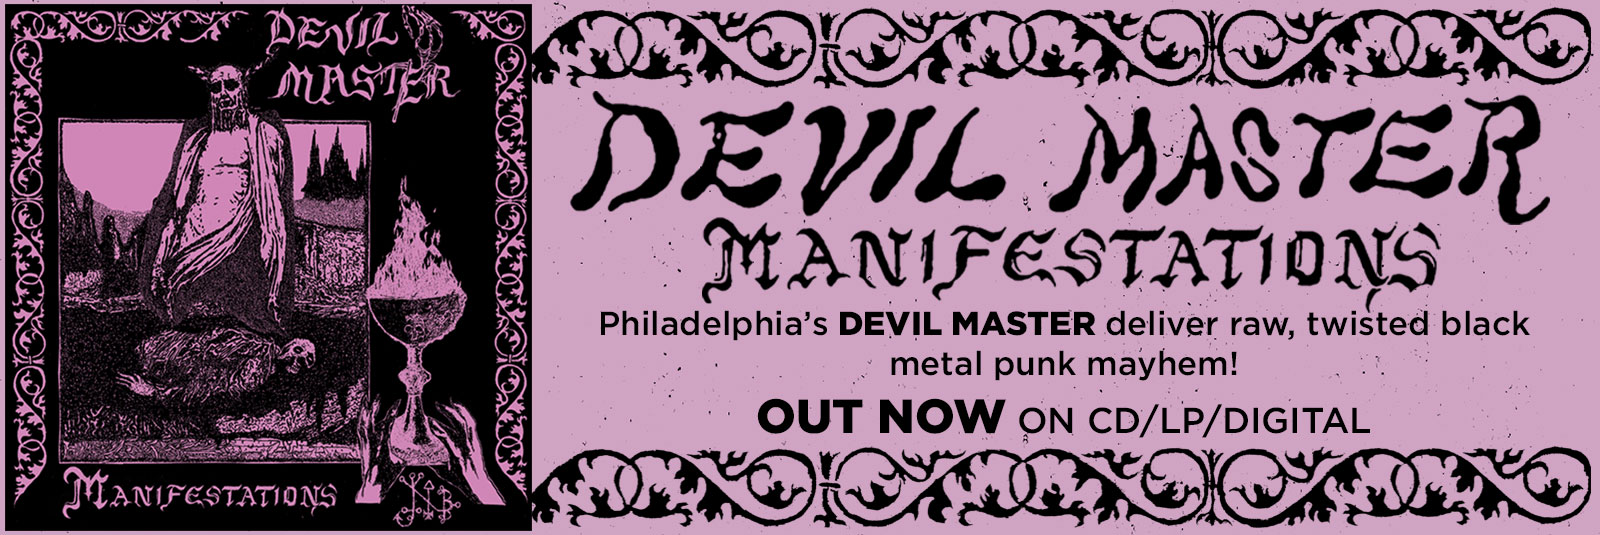 devil-master-manifestations-black-metal-crust-punk-november-2